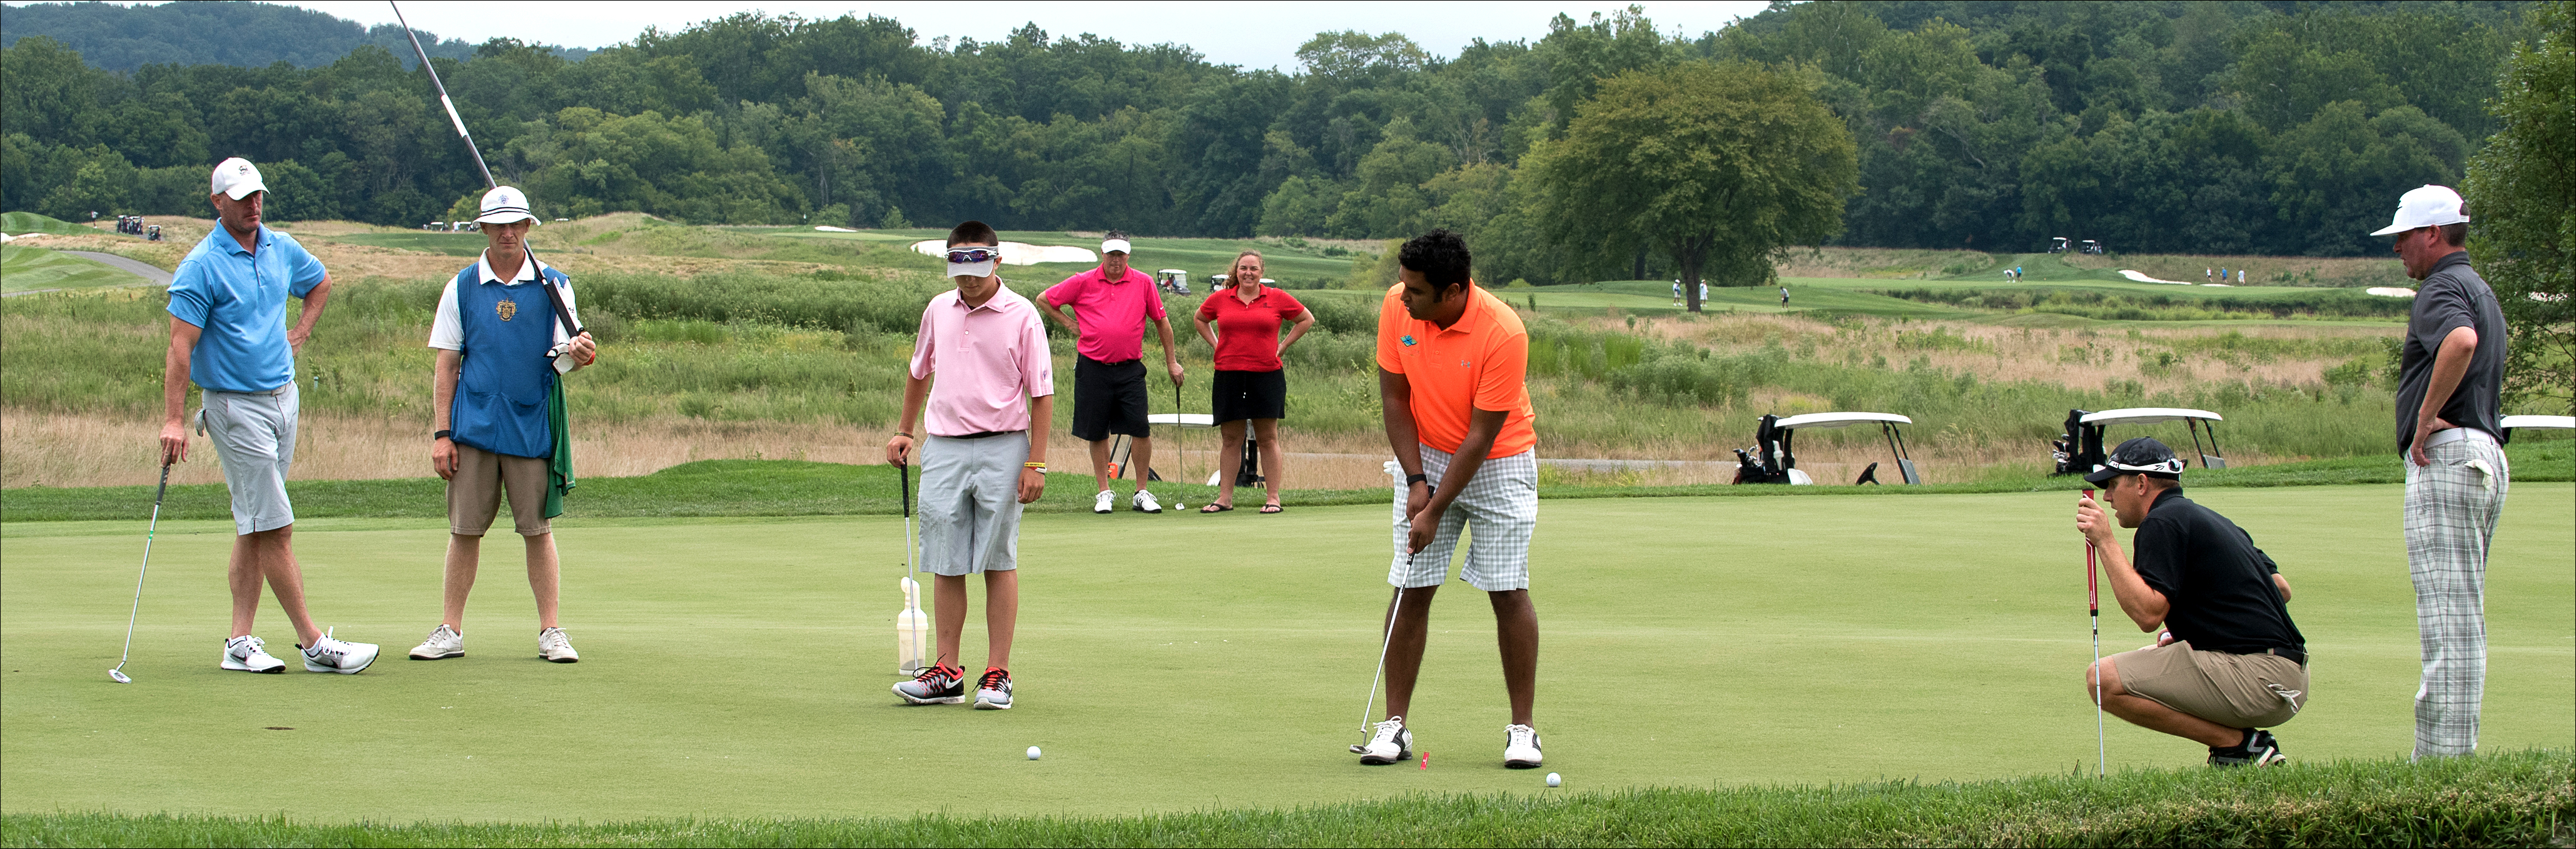 Golfers at YouthQuest's 10th Annual Challenge at Trump National Golf Club August 10, 2015